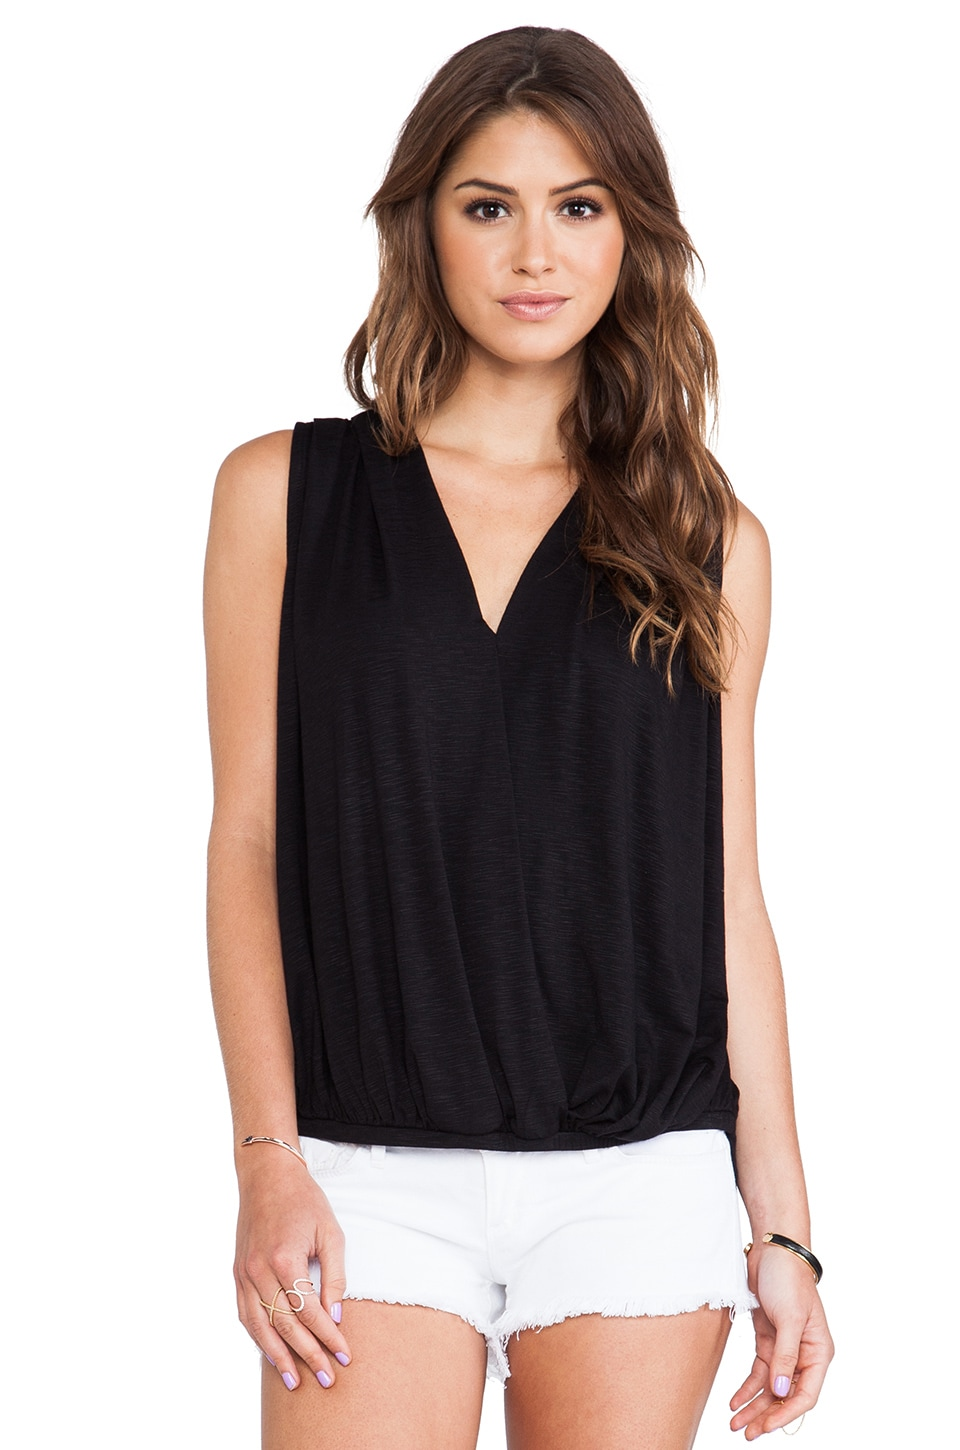 dolan Sleeveless Cross Front Top in Black